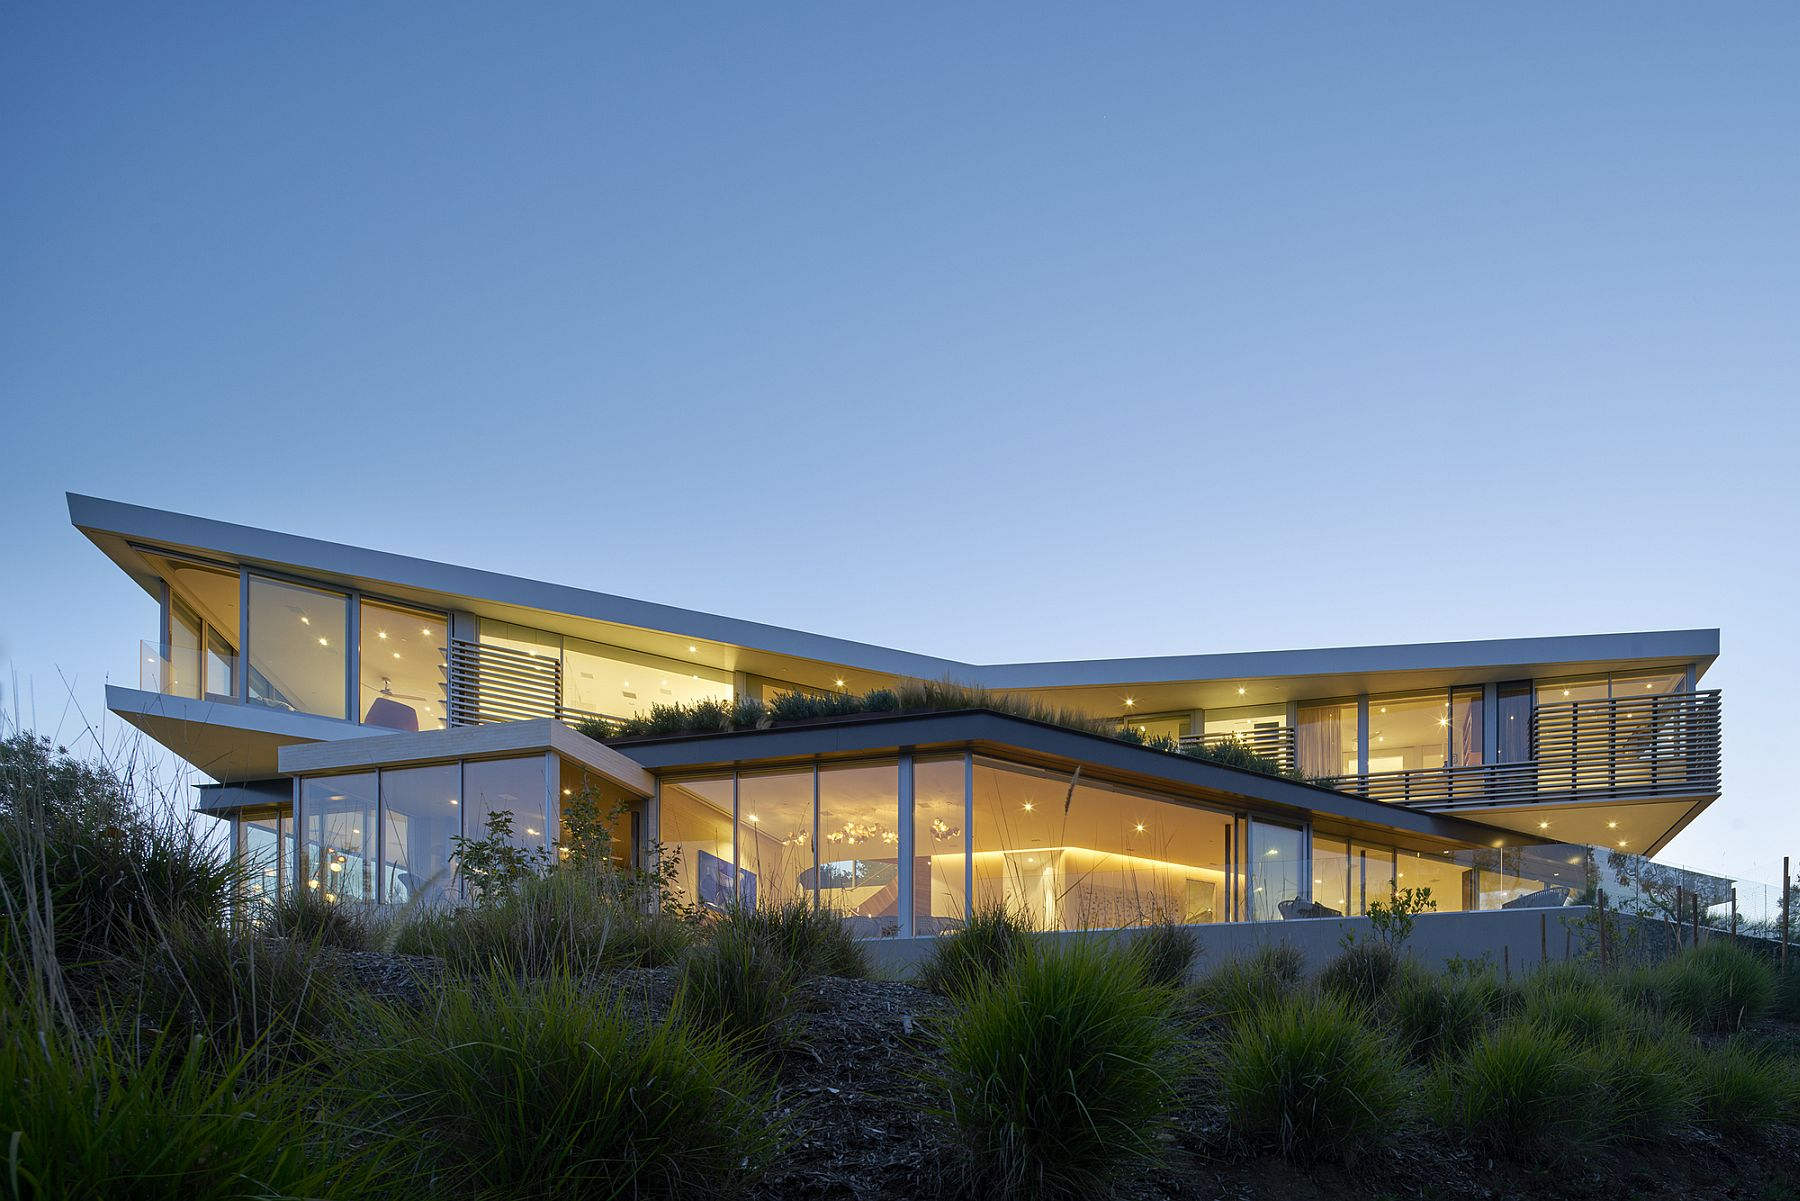 Unique design and silhouette of the stylish contemporary residence in LA